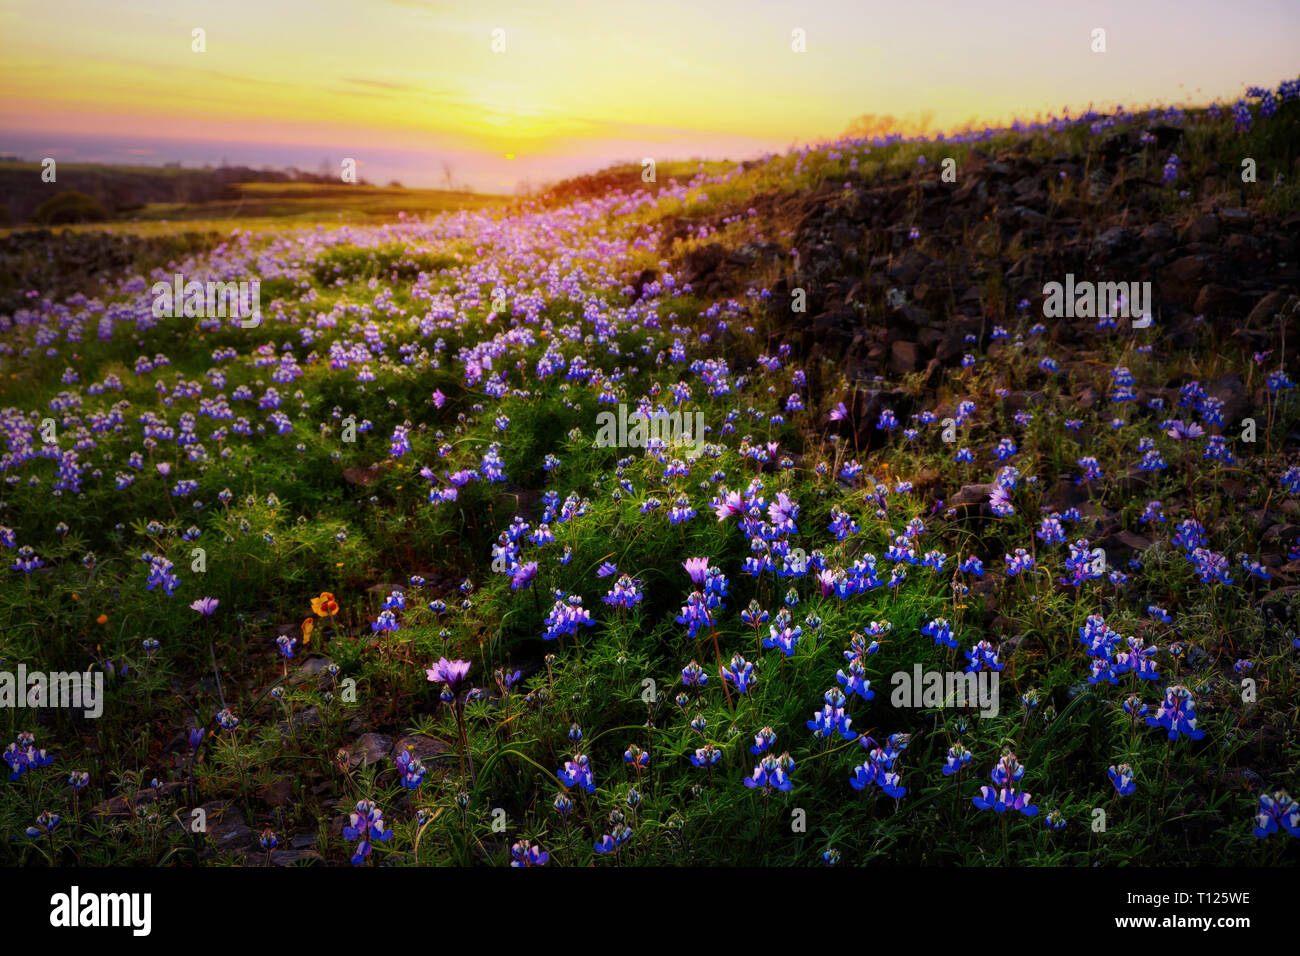 A Tranquil Landscape Of The Sunset Behind A Green Field Full Of Yellow Blue And Purple Wildflowers On Table Mountain In Northern California Stock Photo Alamy